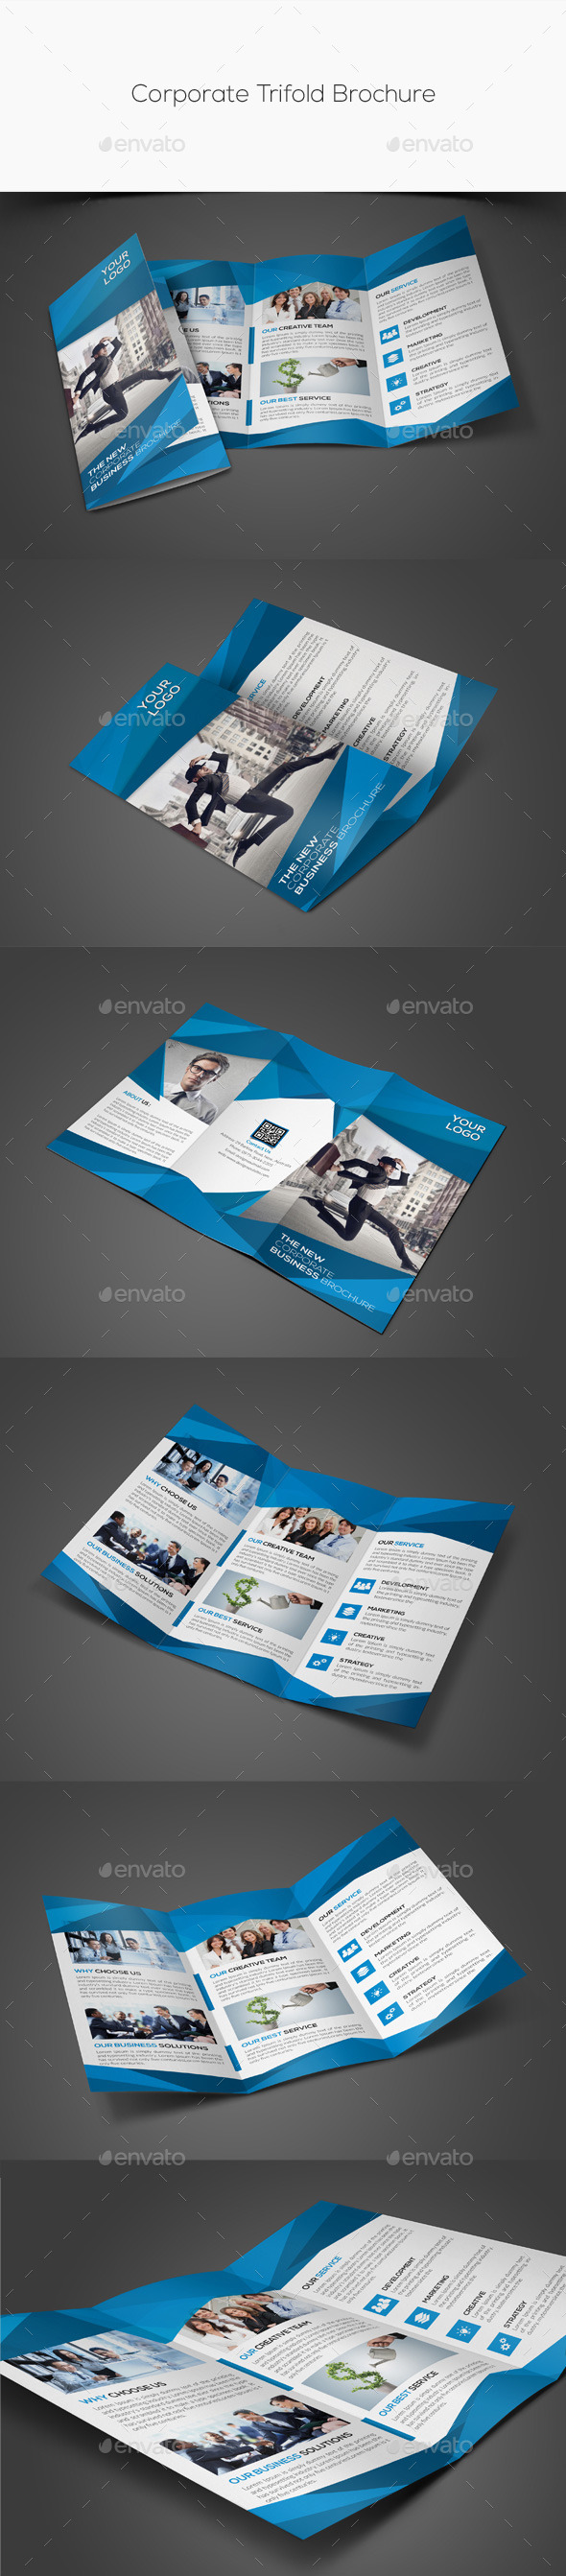 GraphicRiver Corporate Trifold Brochure 11324531